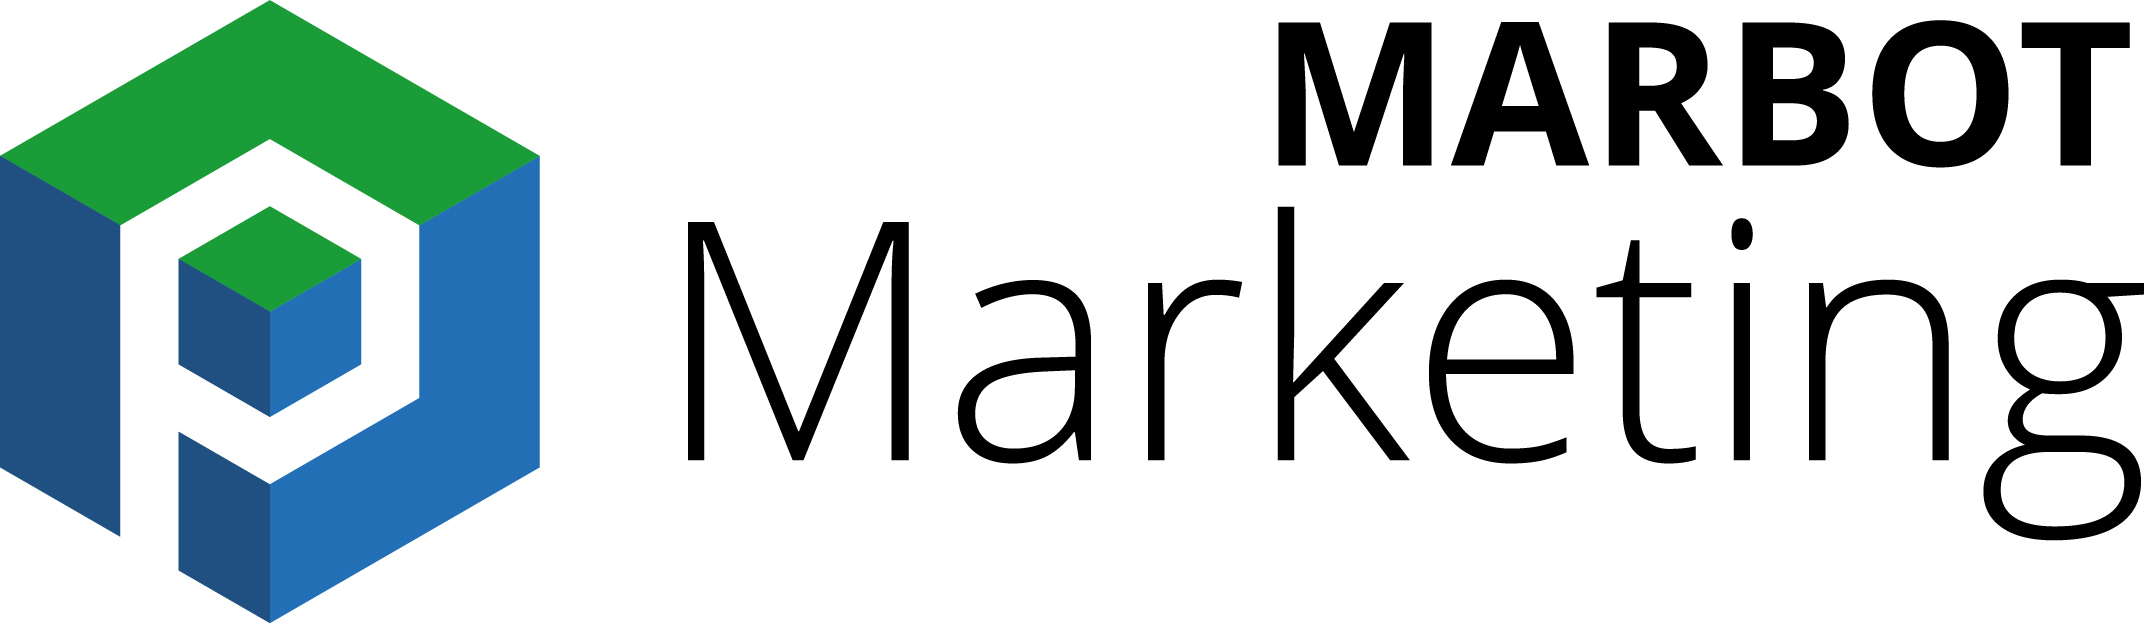 Logo Marbot Marketing